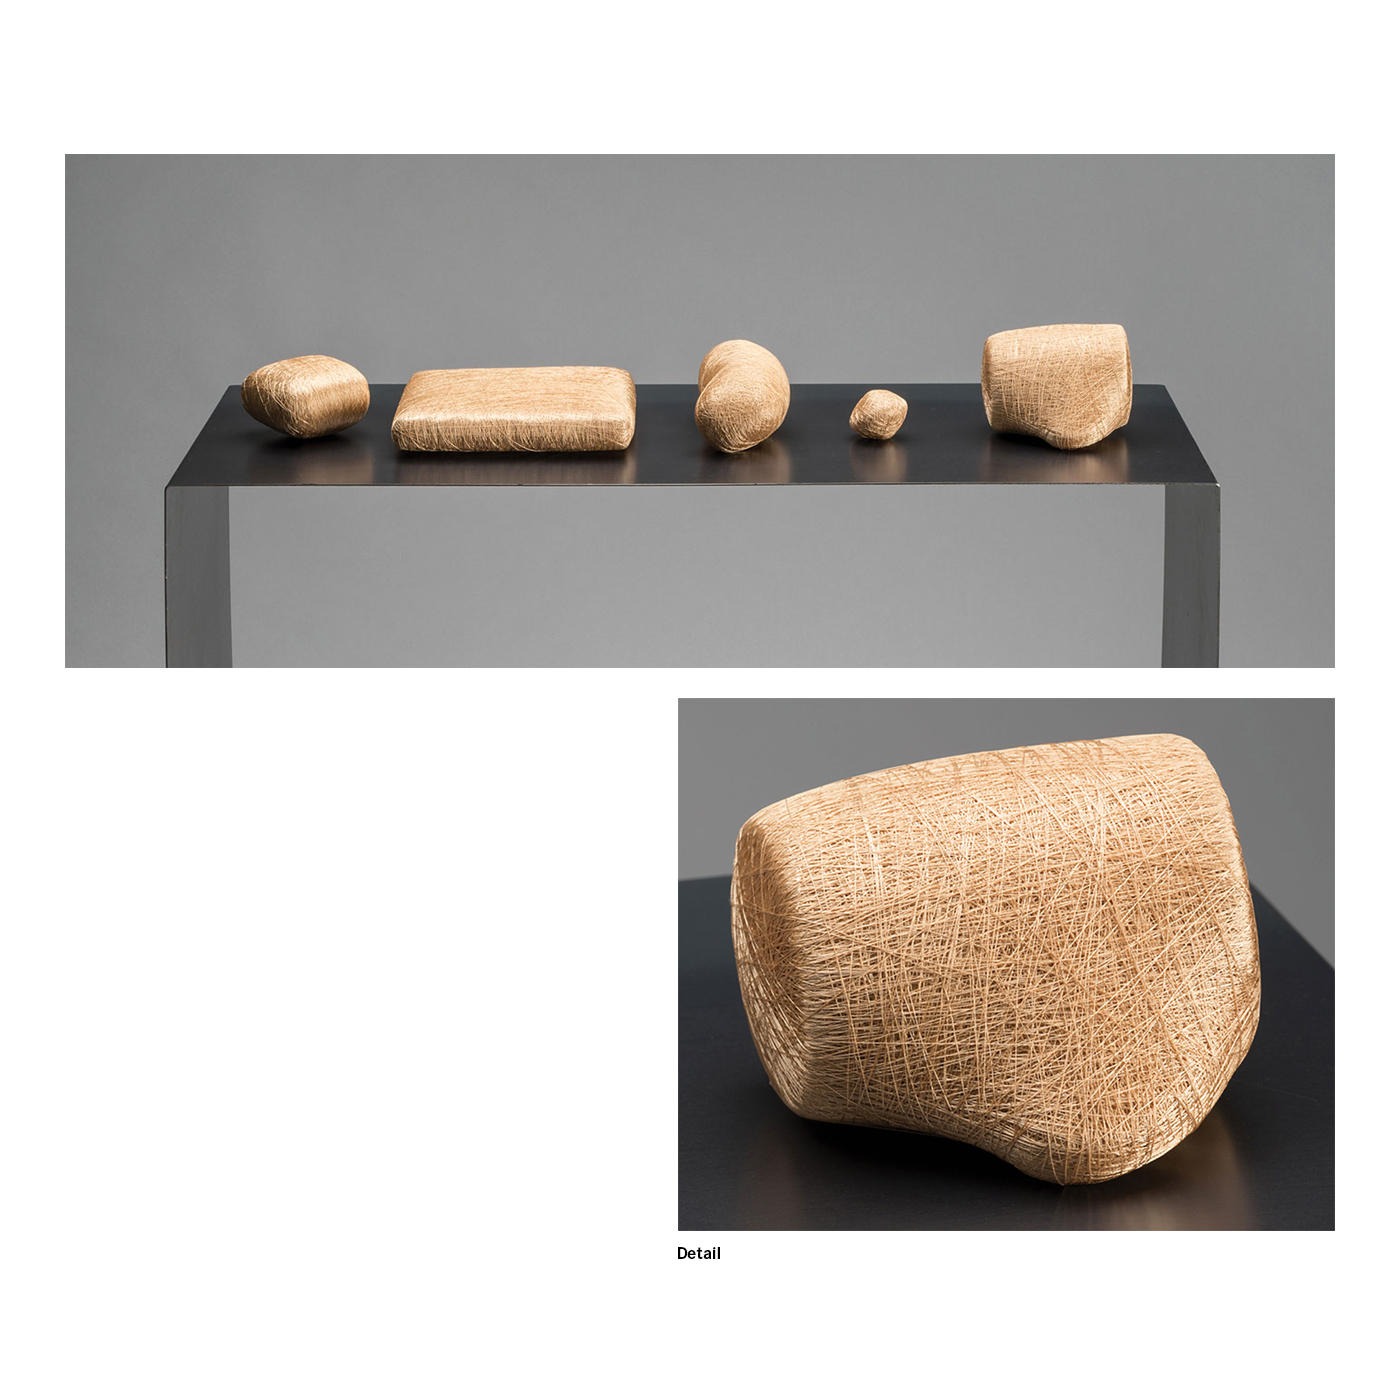 Molly R. Berger  - Recollection Objects